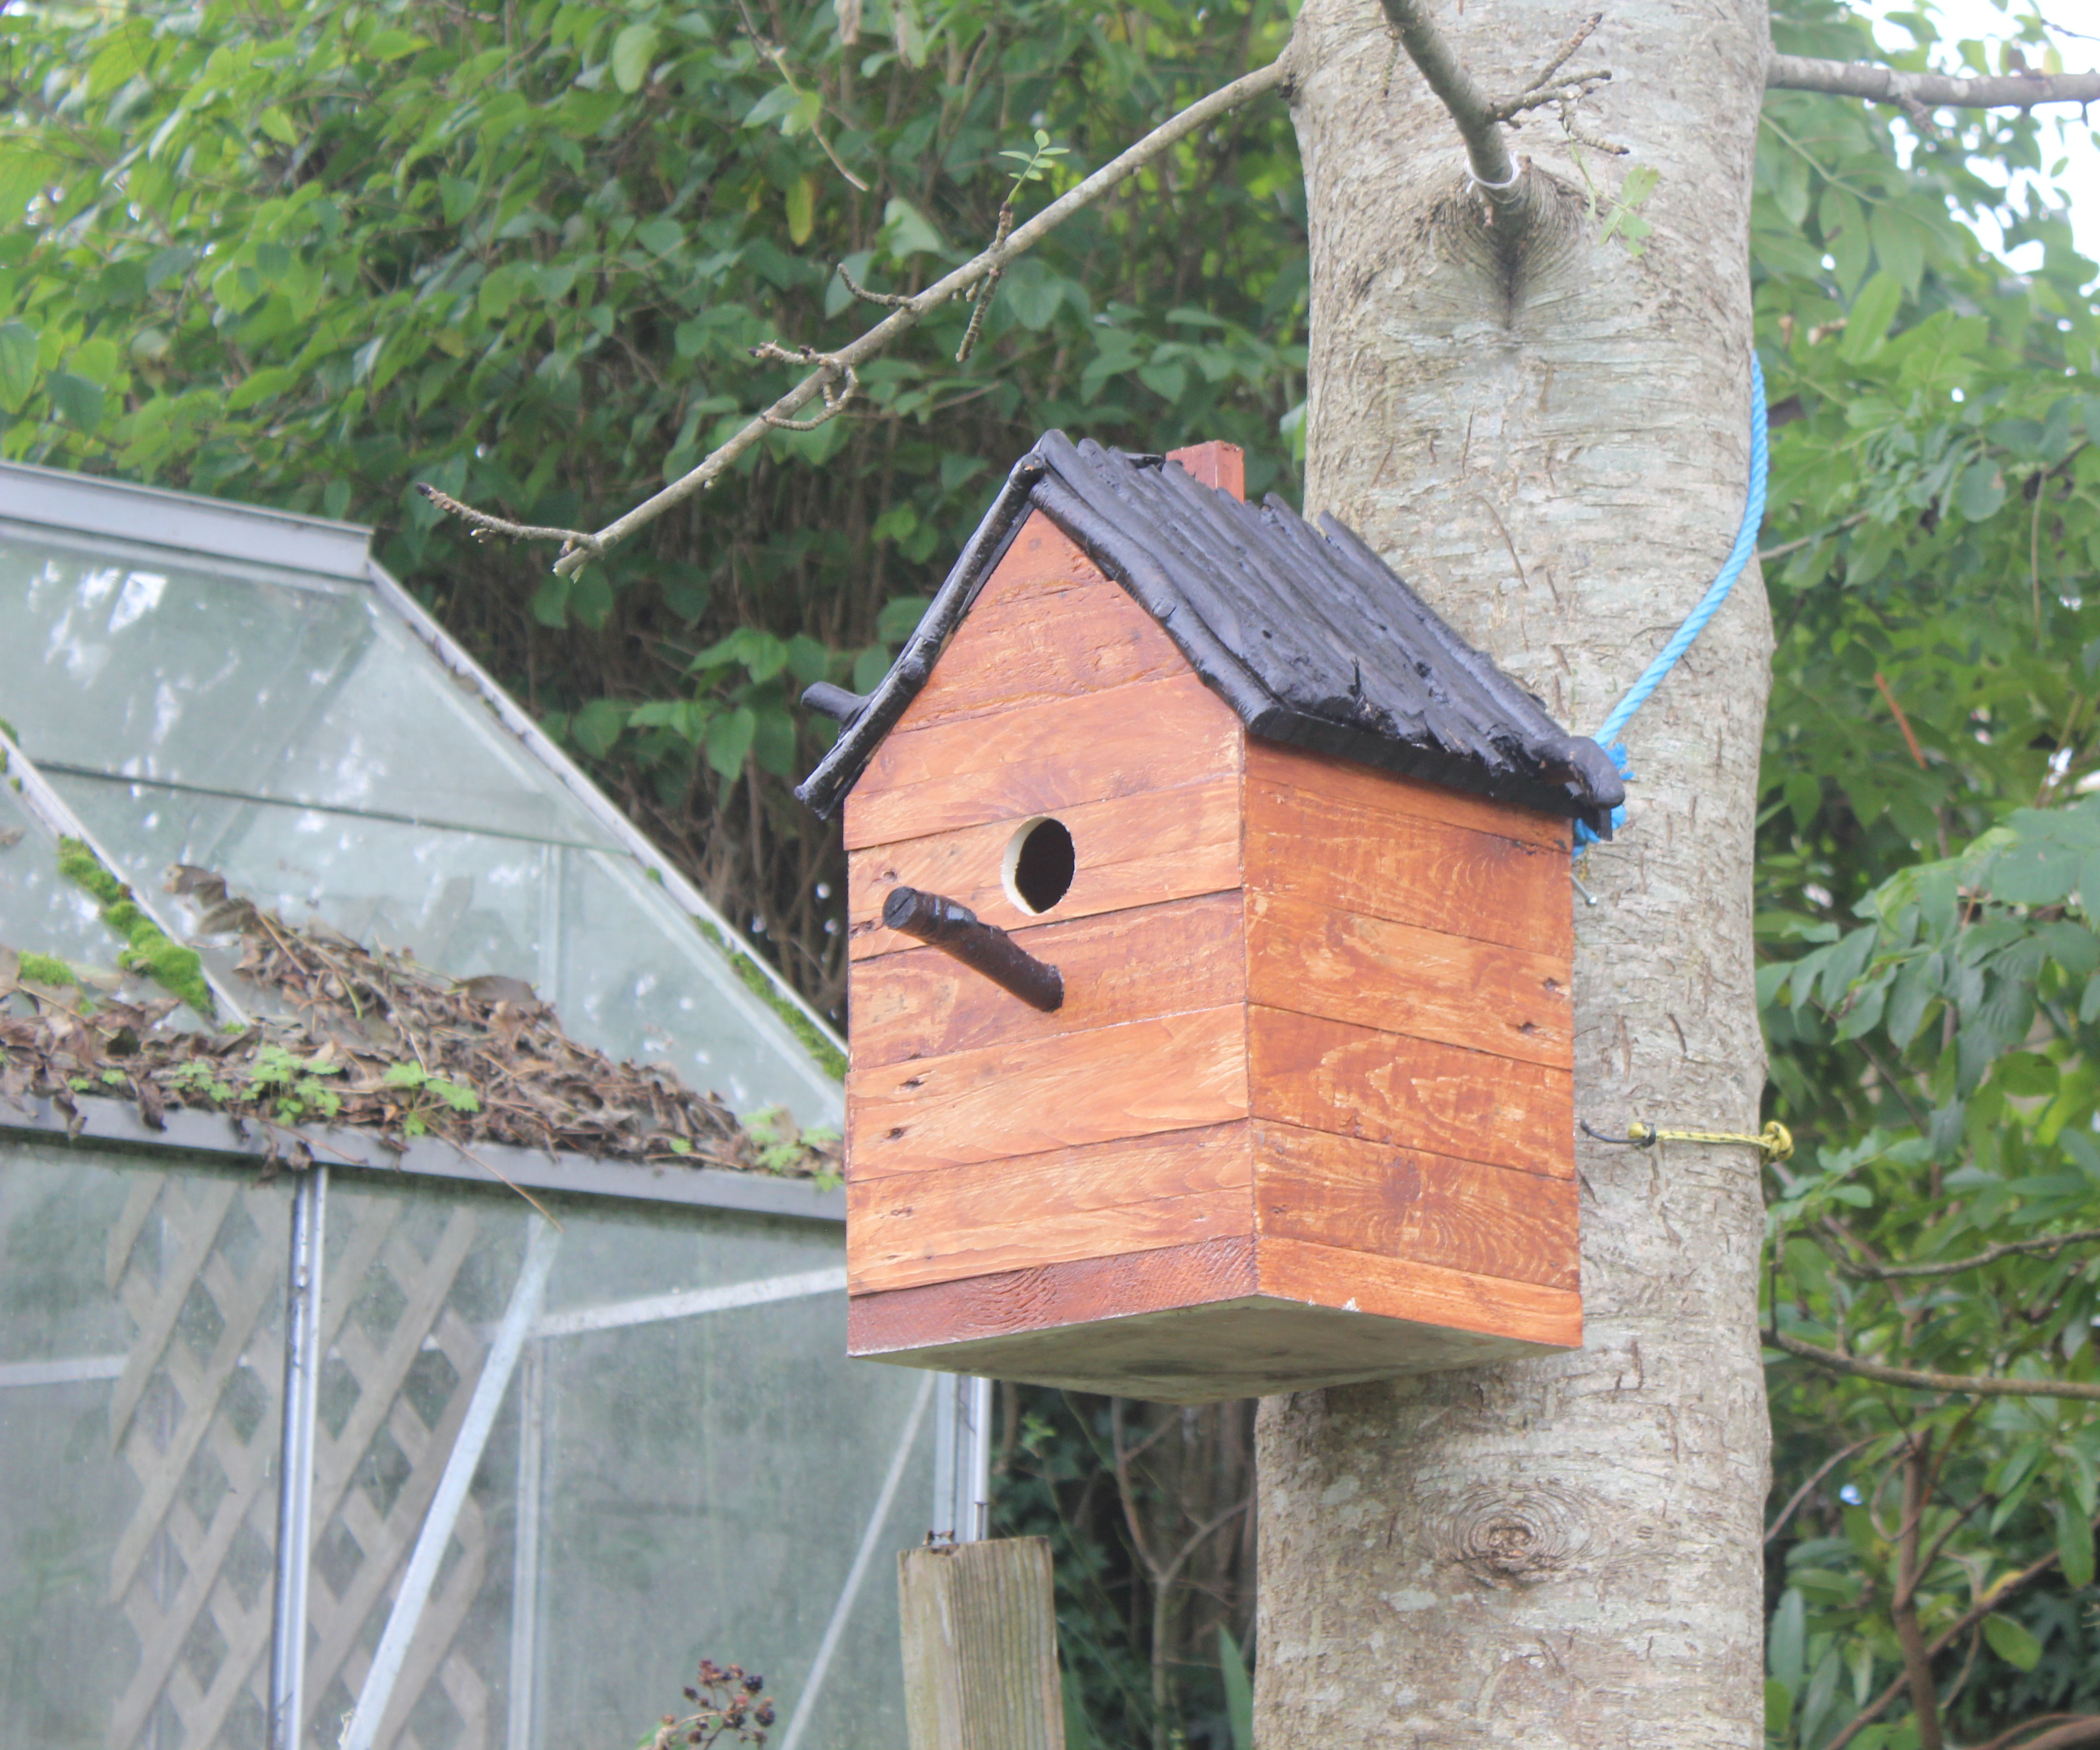 How To Build a Birdhouse from Pallets